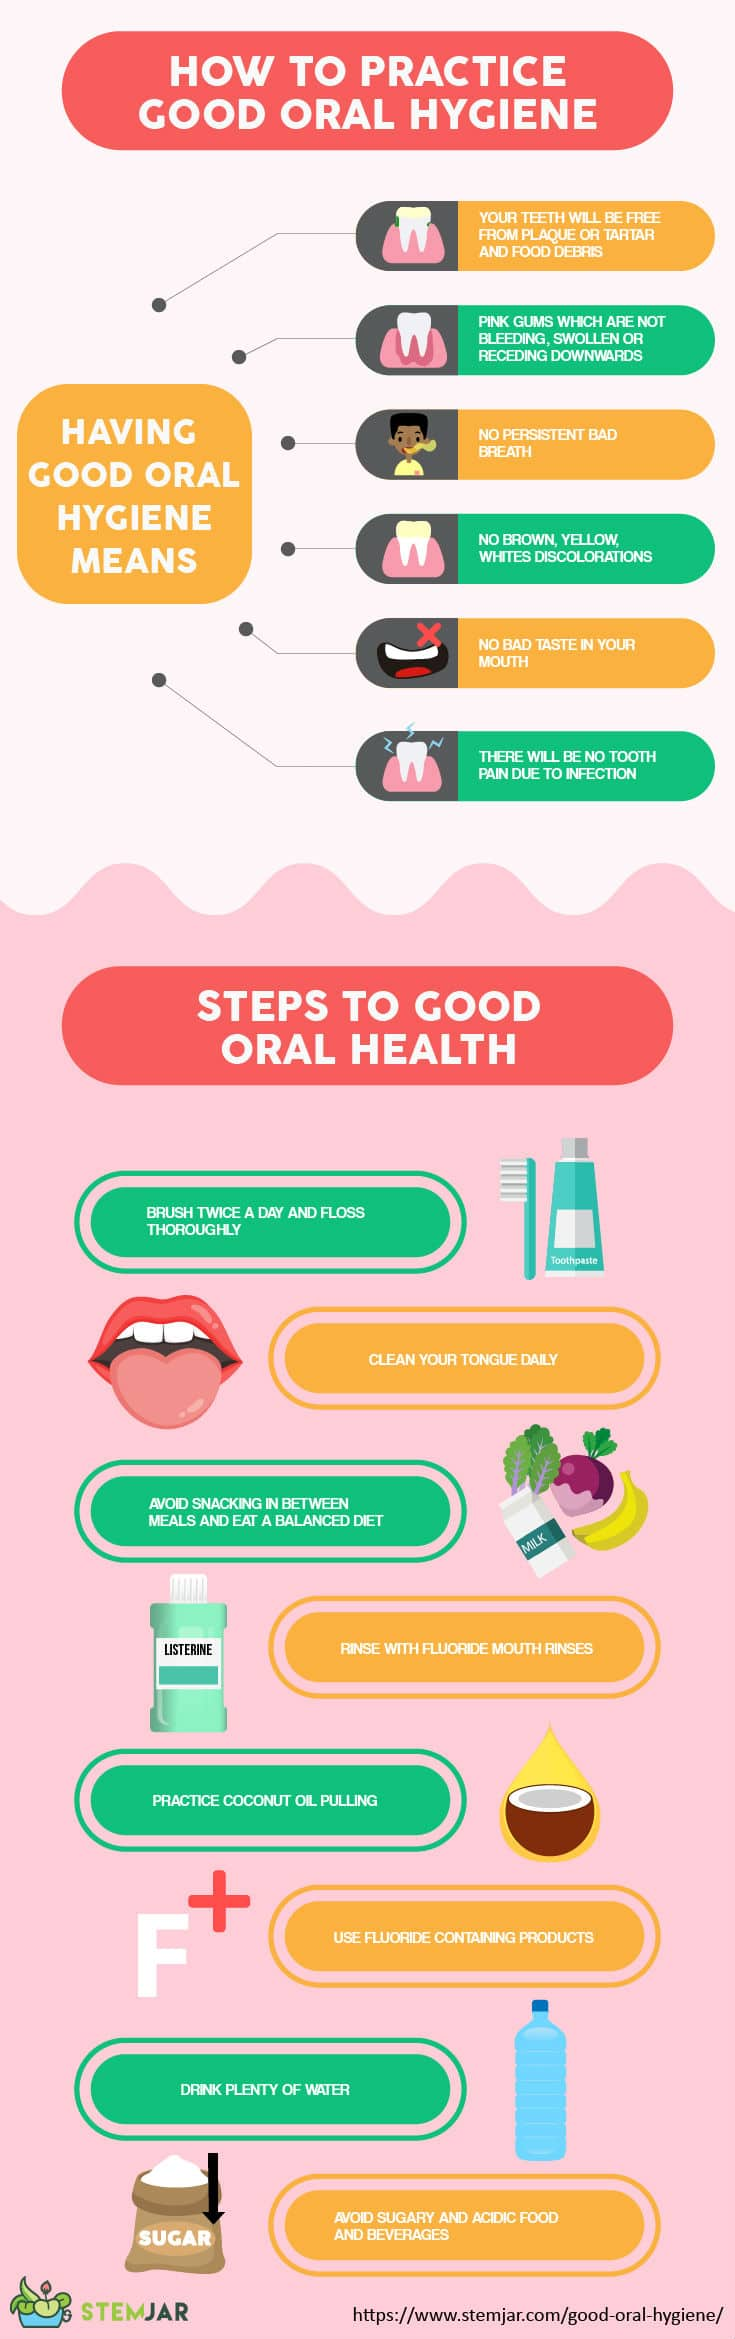 Good Oral Hygiene infographic